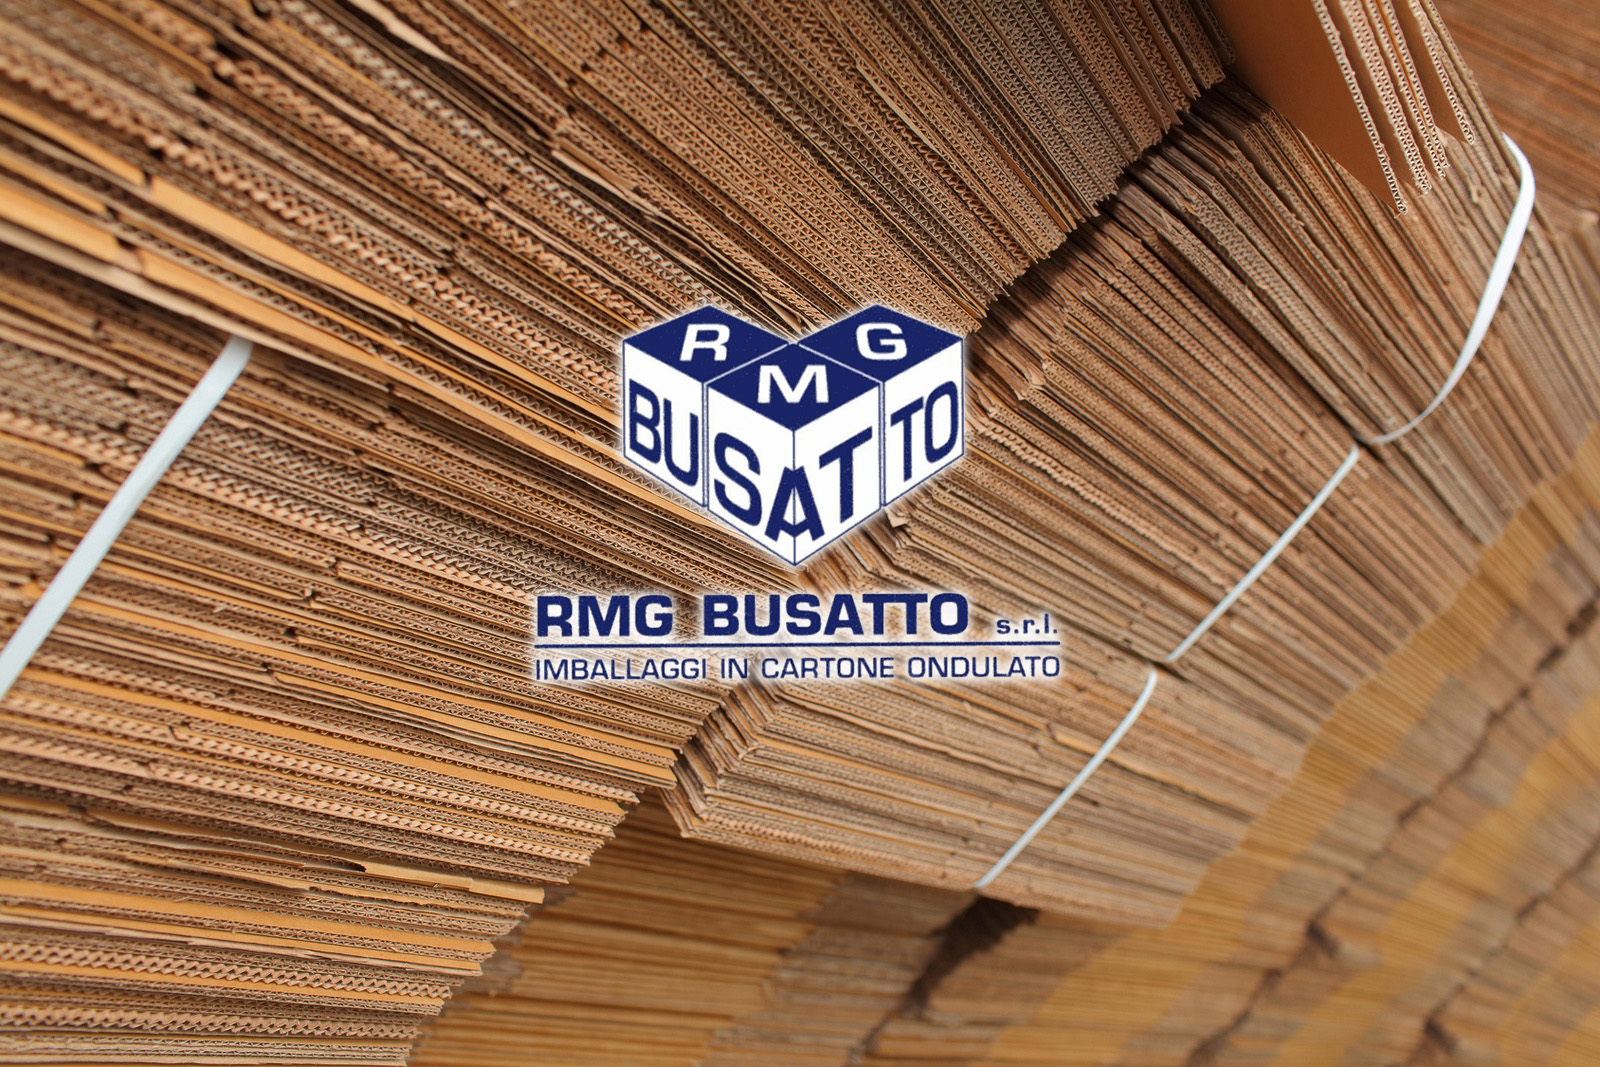 RMG Busatto s.r.l.